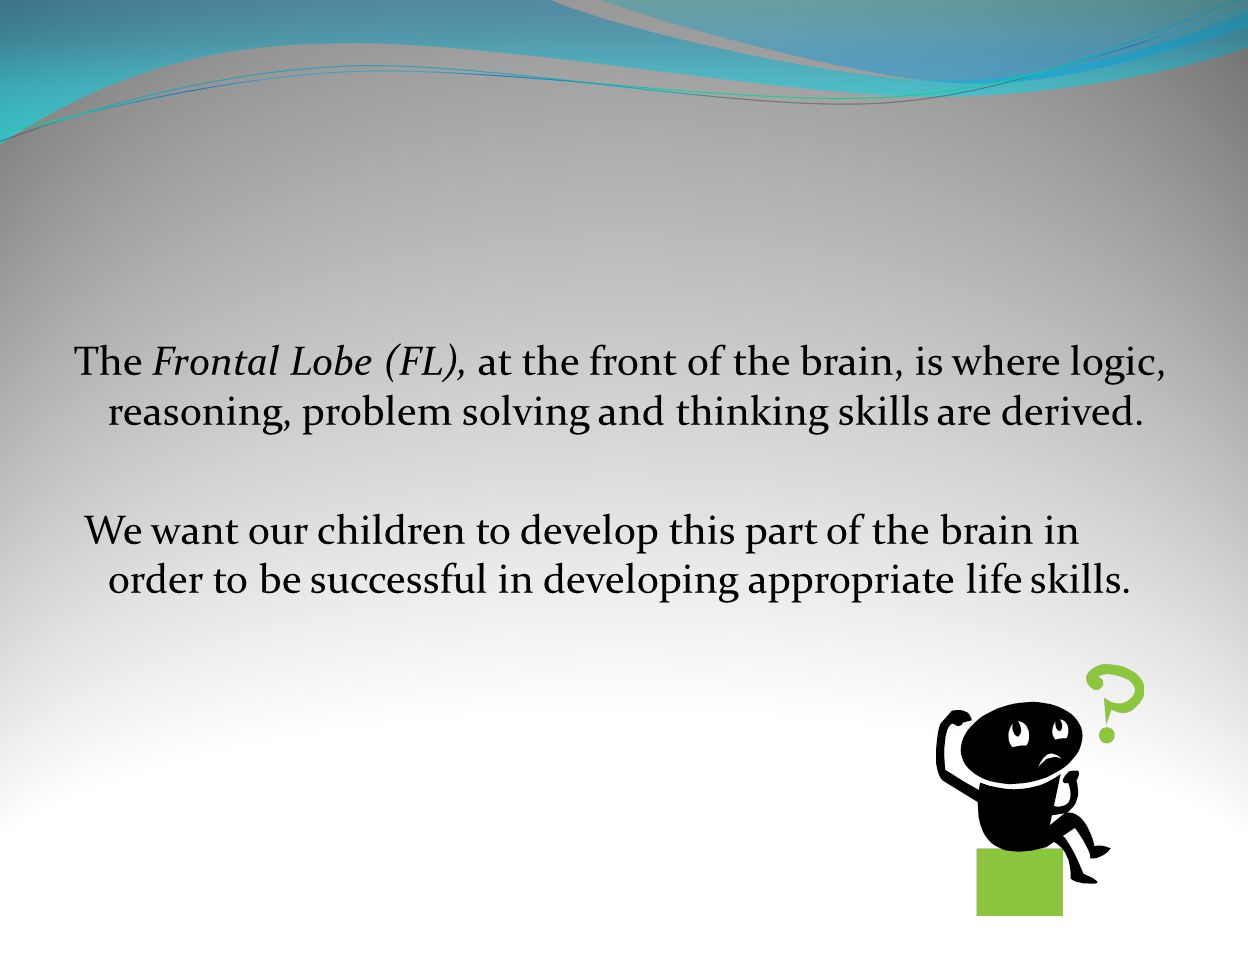 The Frontal Lobe (FL), at the front of the brain, is where logic, reasoning, problem solving and thinking skills are derived.